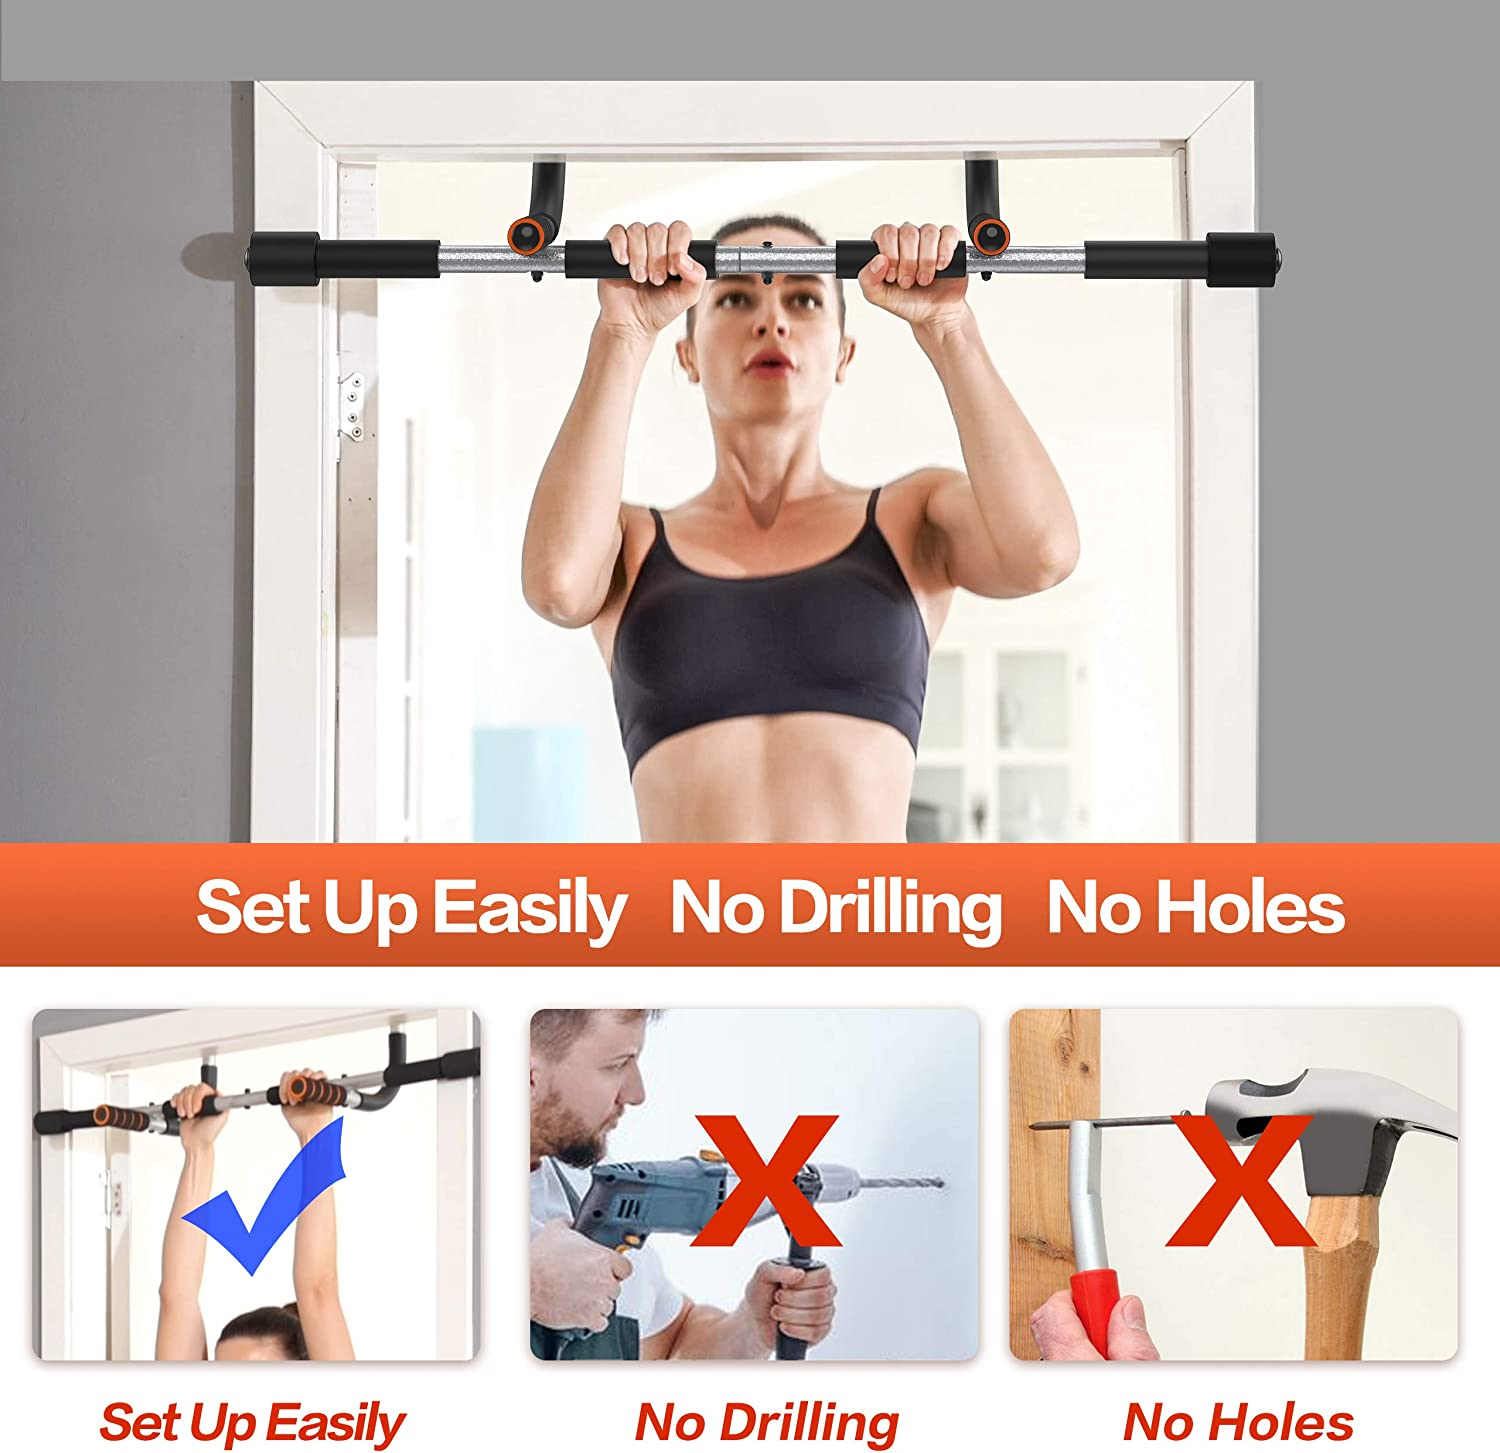 Exercise Equipment Body Gym System No Screws Trainer Multi-Grip Chin Up Bar /& Exercise Bar /& Home Workout YIOFOO Doorway Pull Up Bar with Ergonomic Grip